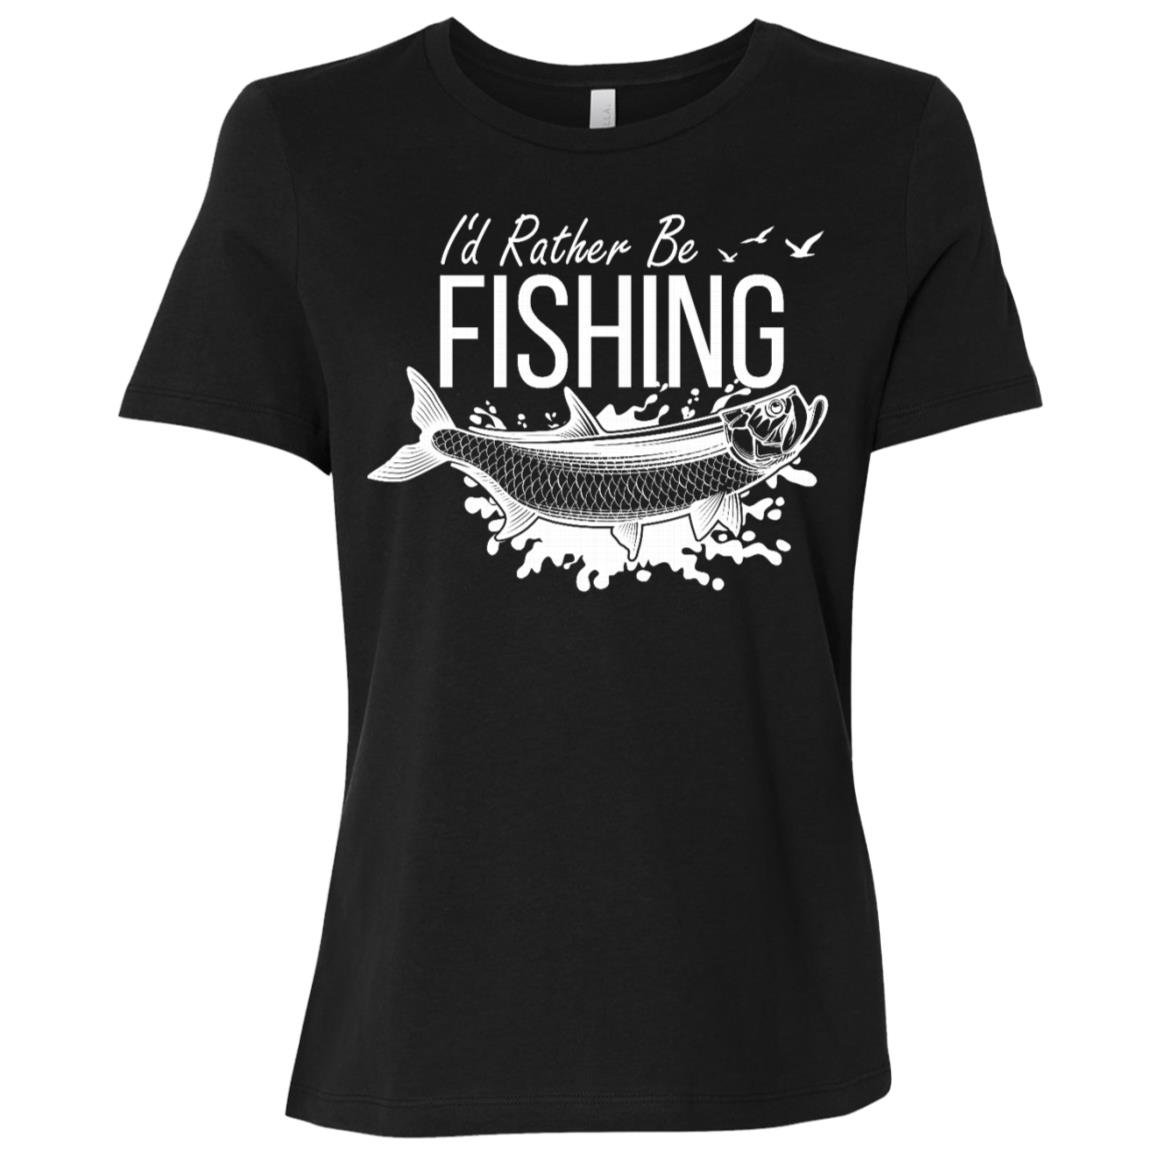 I'd Rather Be Fishing Camping Funny Camping -4 Women Short Sleeve T-Shirt